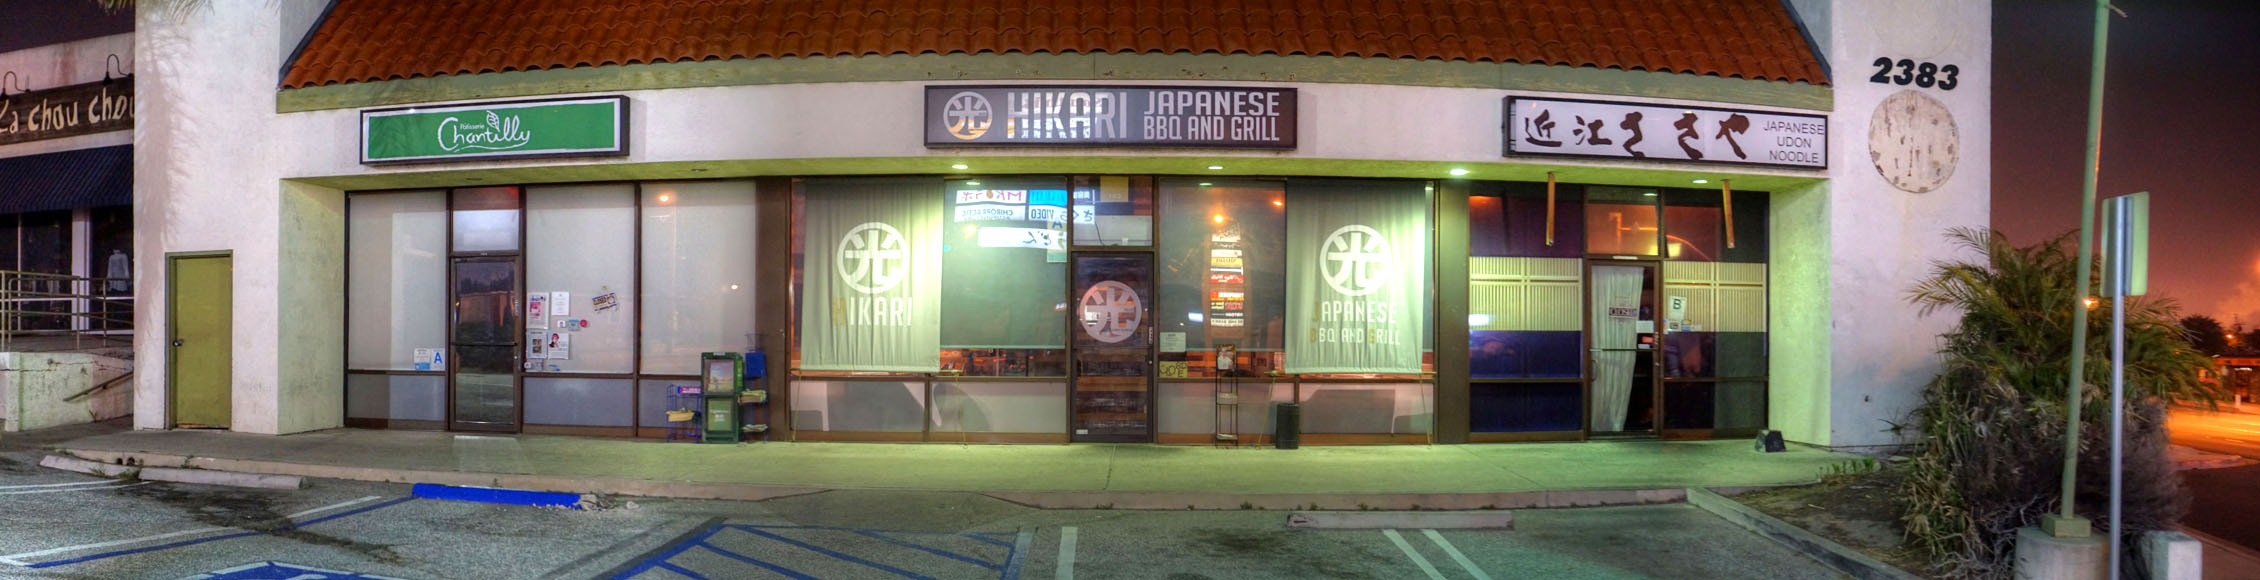 Hikari Japanese BBQ and Grill Exterior